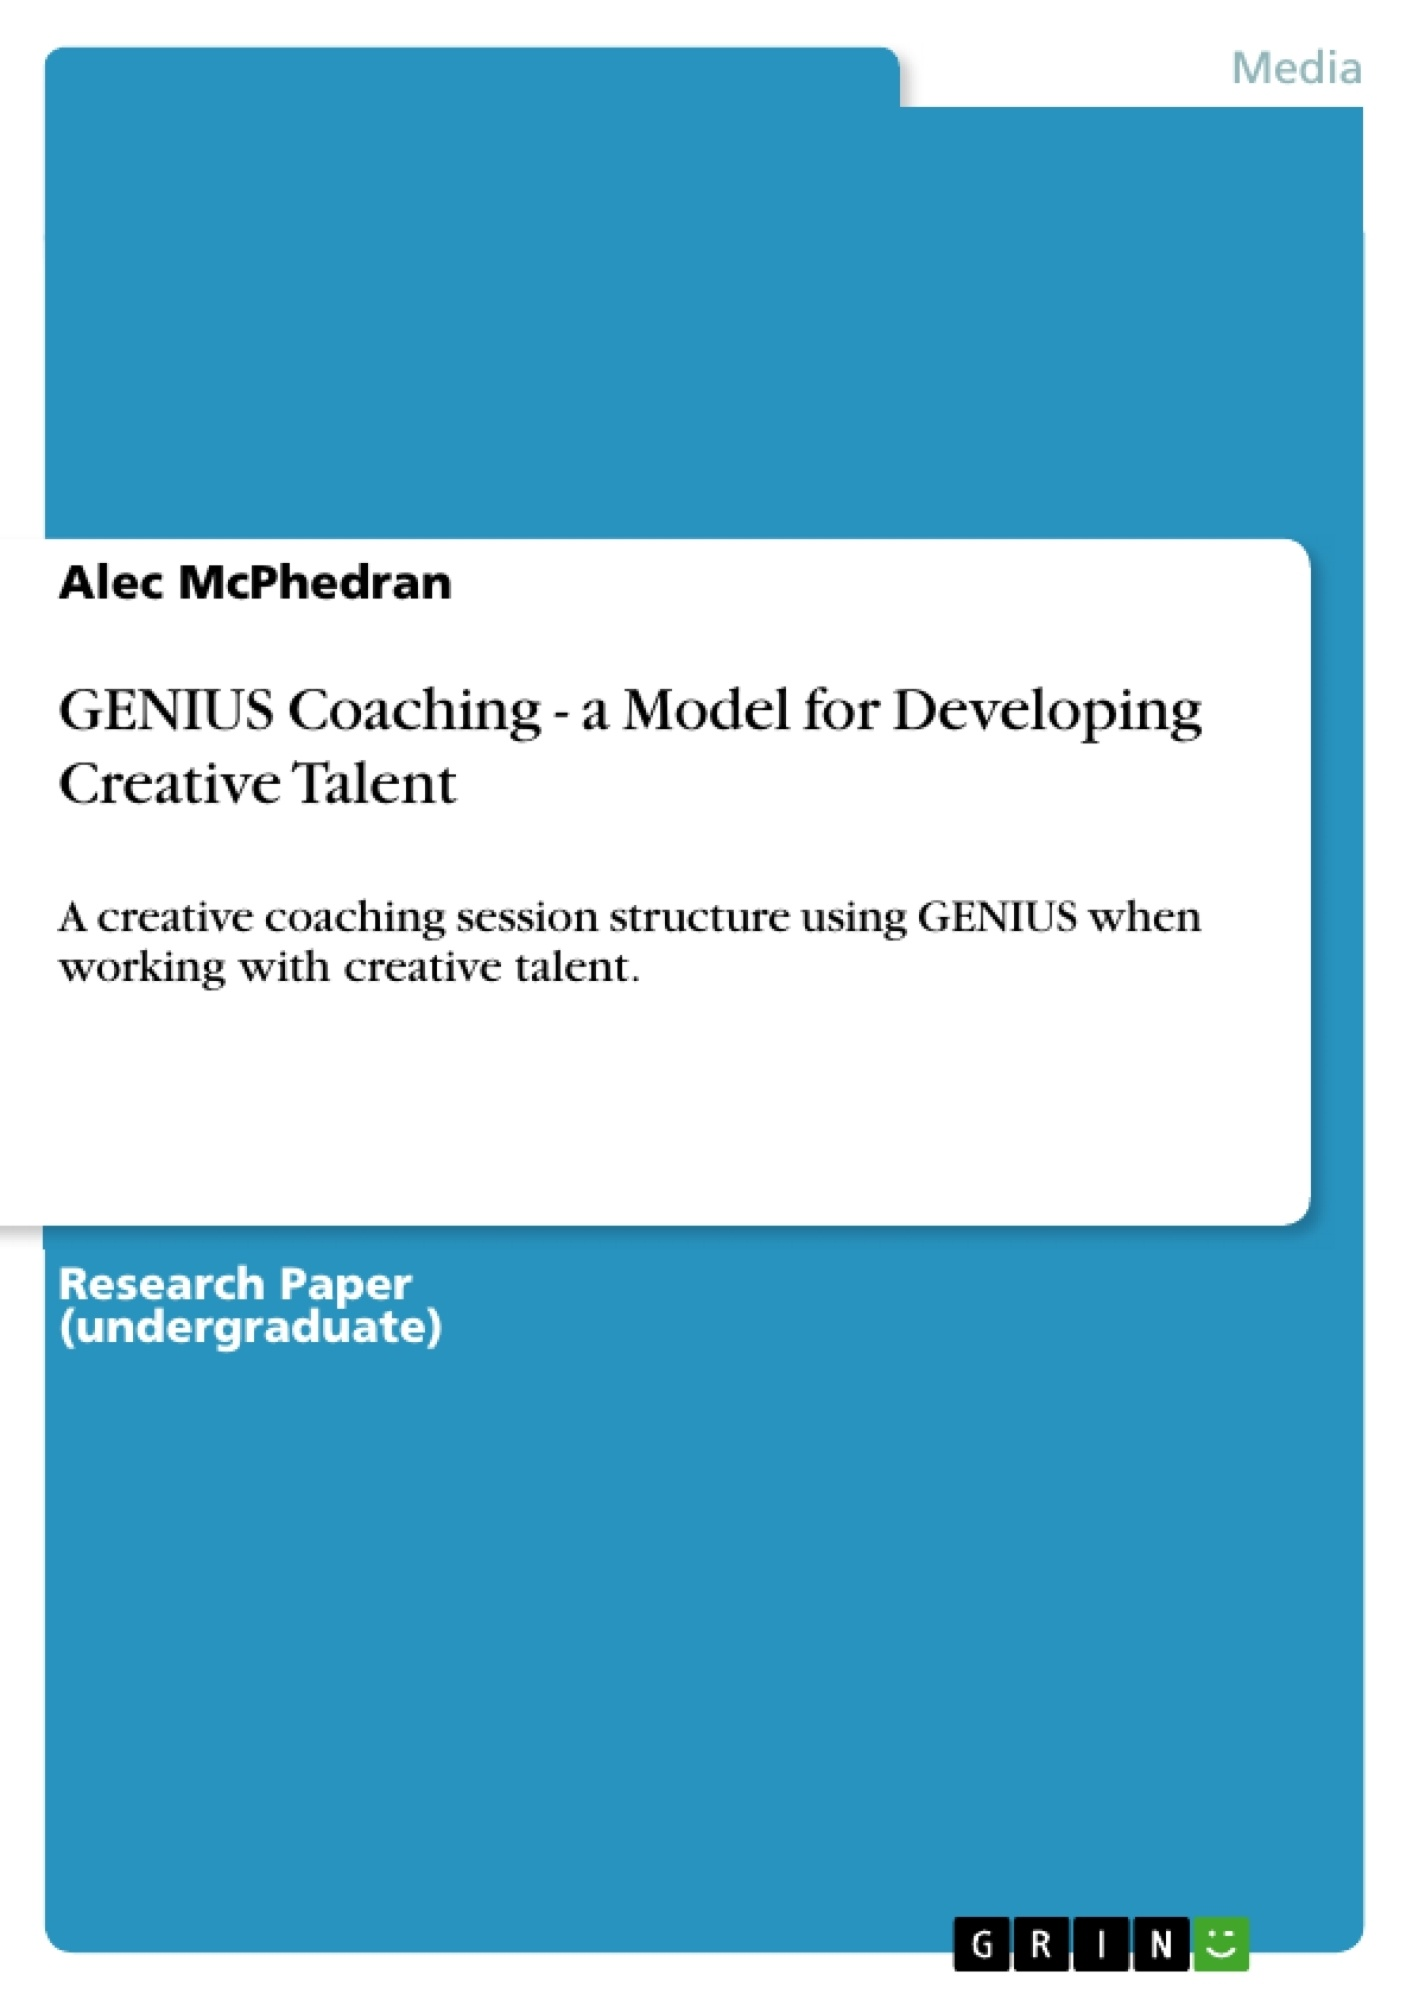 Title: GENIUS Coaching - a Model for Developing Creative Talent